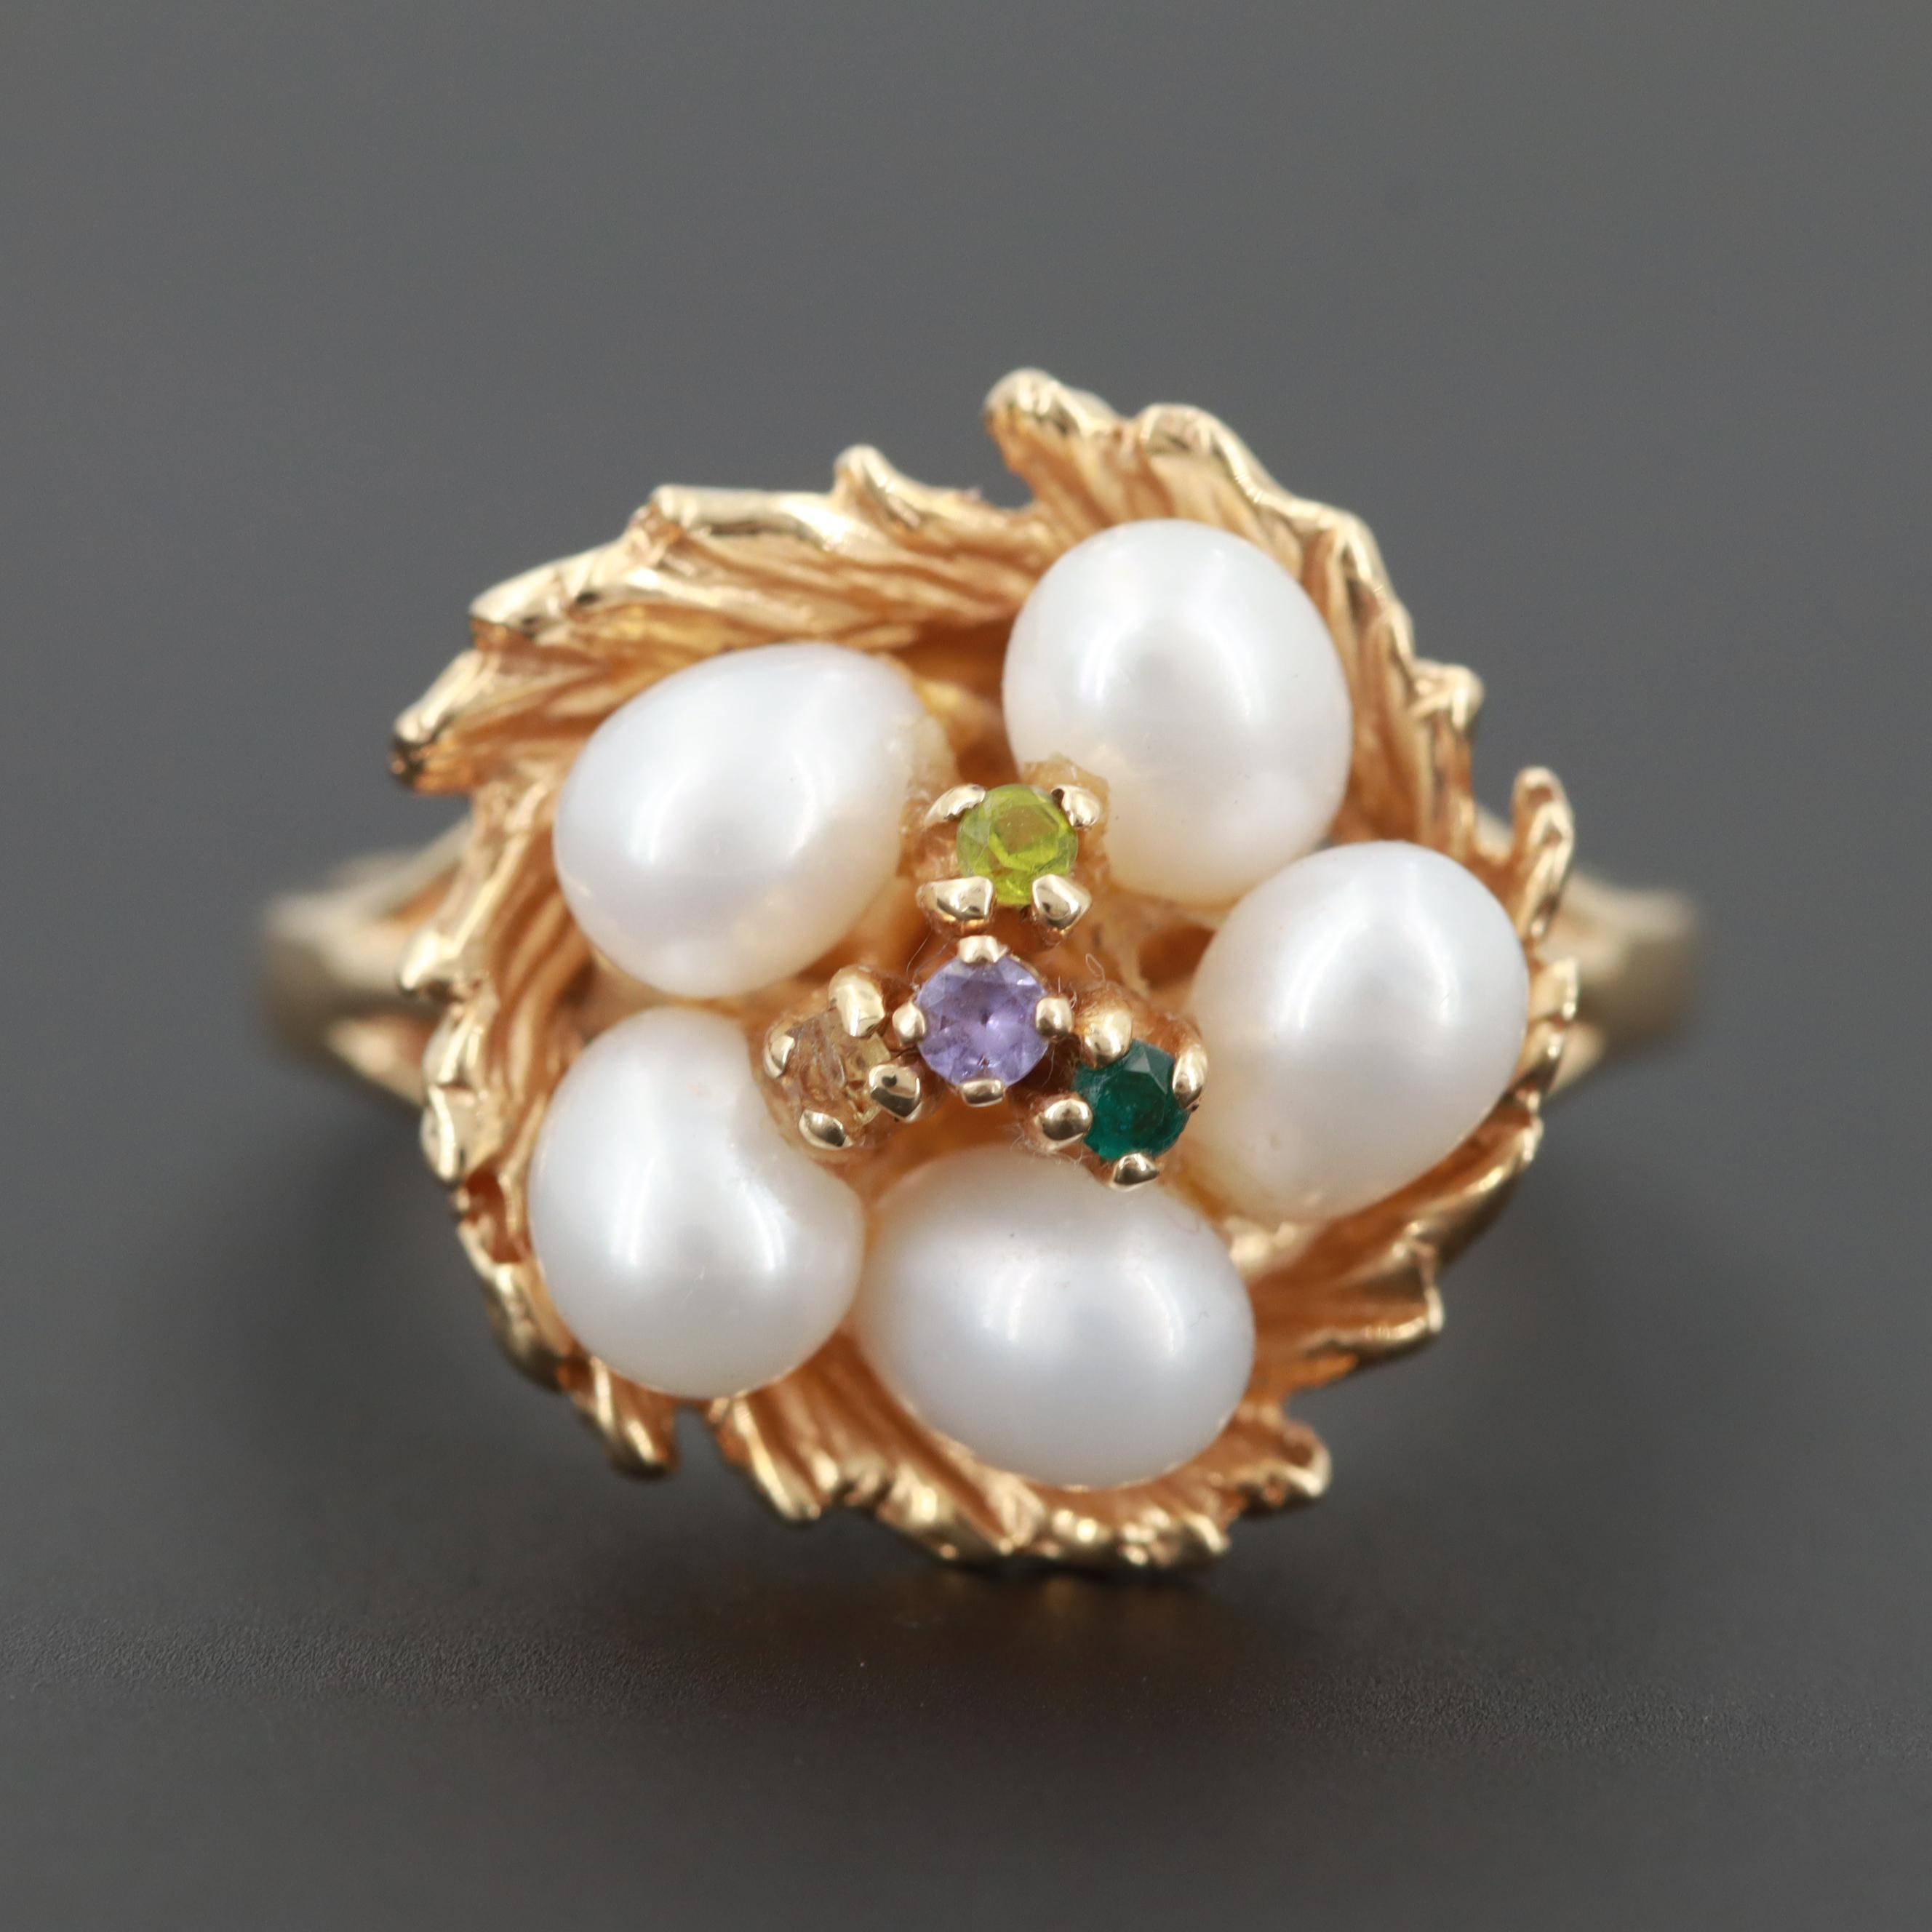 14K Yellow Gold Cultured Pearl Ring with Emerald, Citrine, Amethyst and Peridot